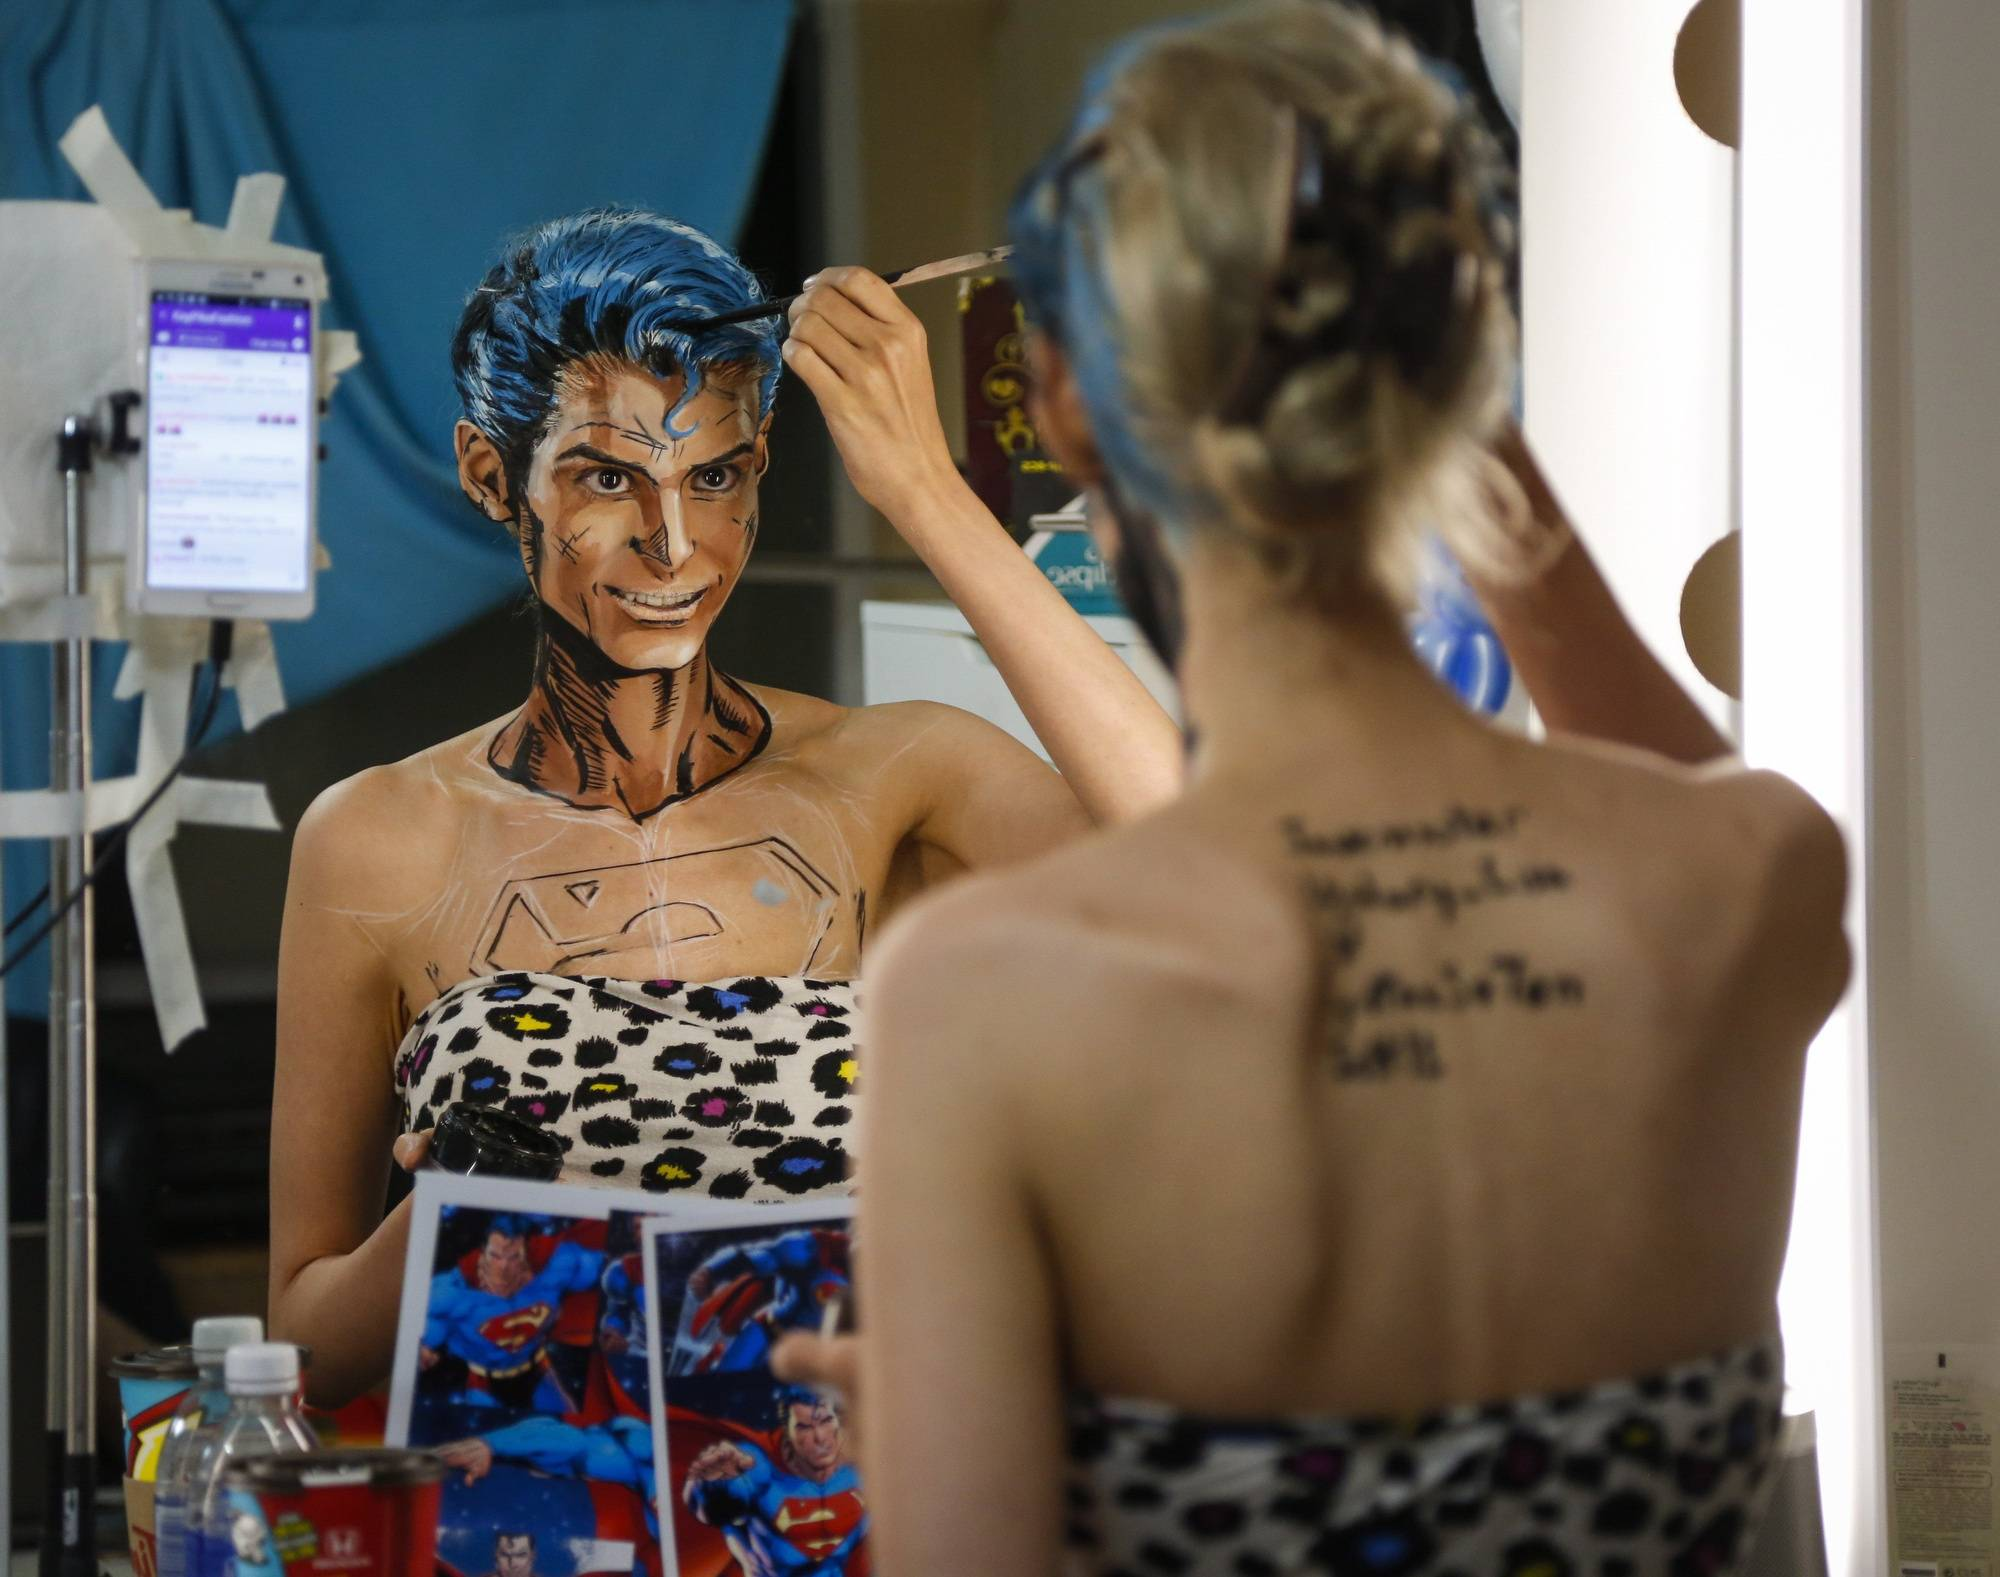 Calgary artist transforms herself into dark-haired Man of Steel for internet audience